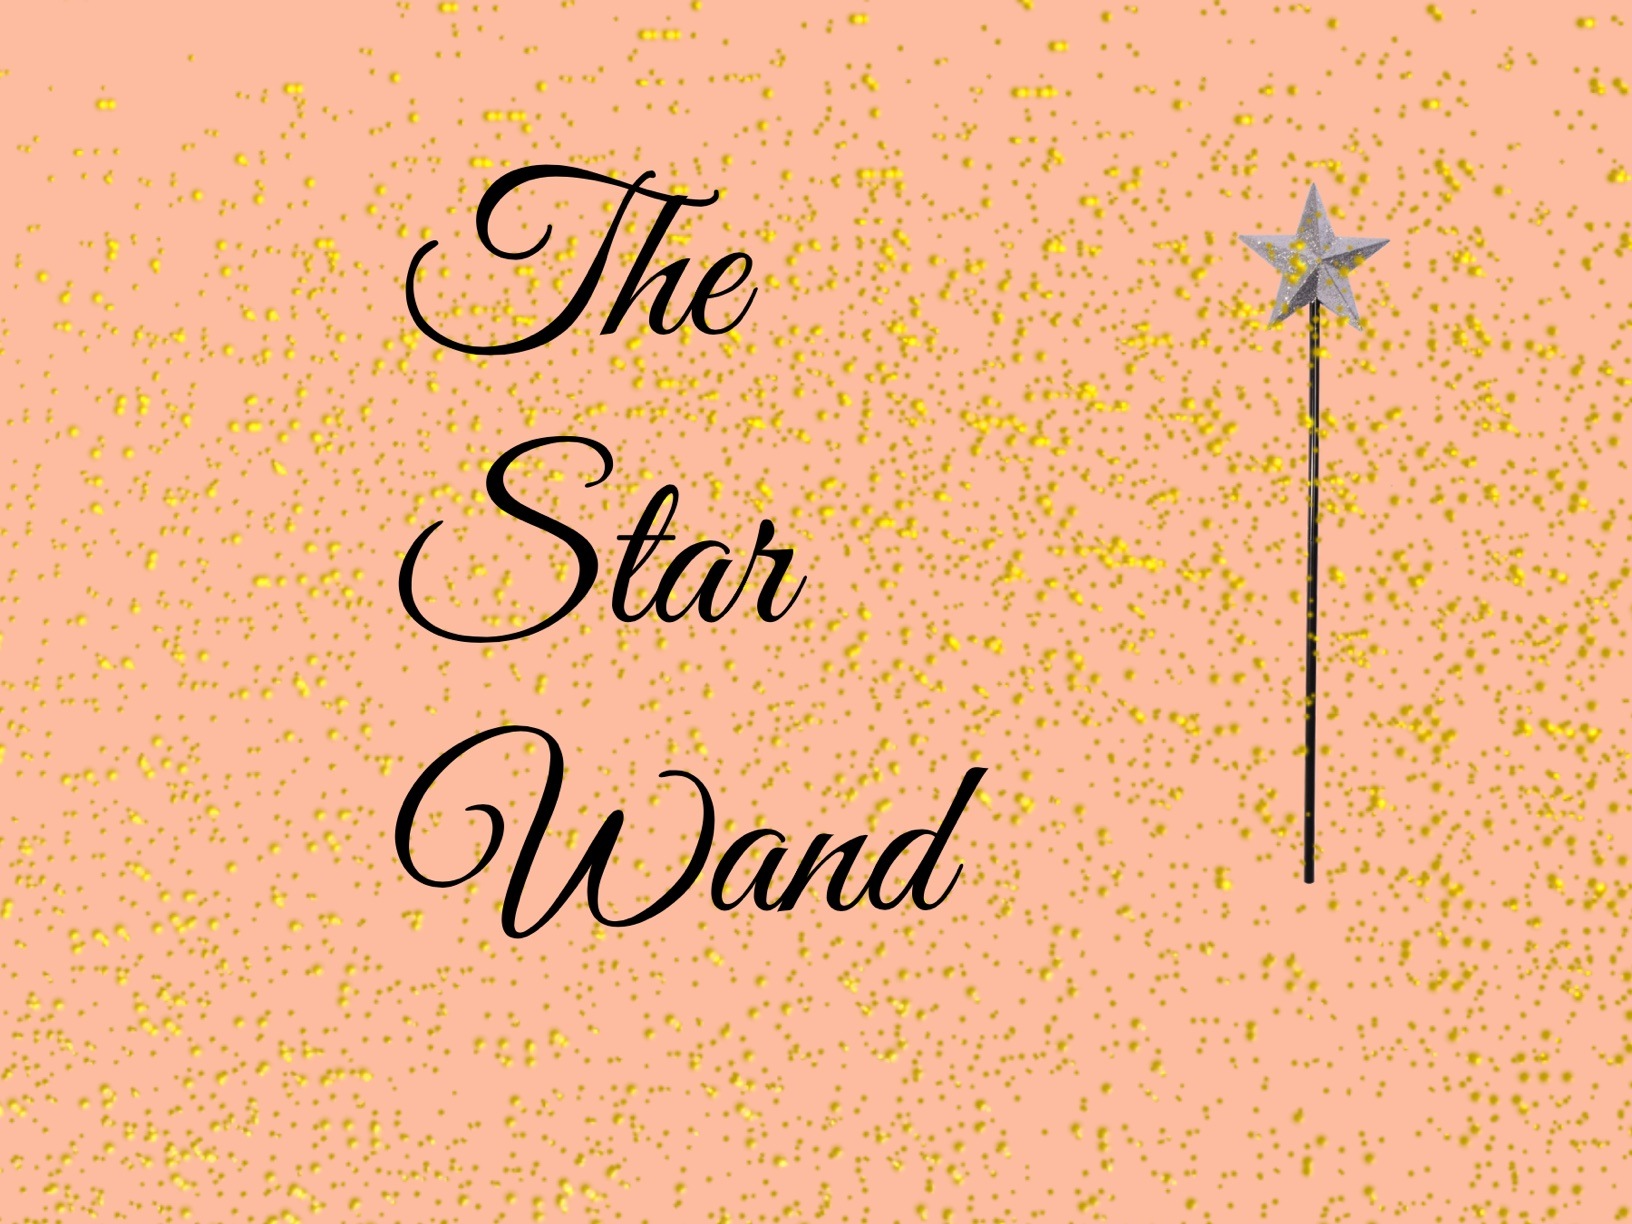 The Star Wand